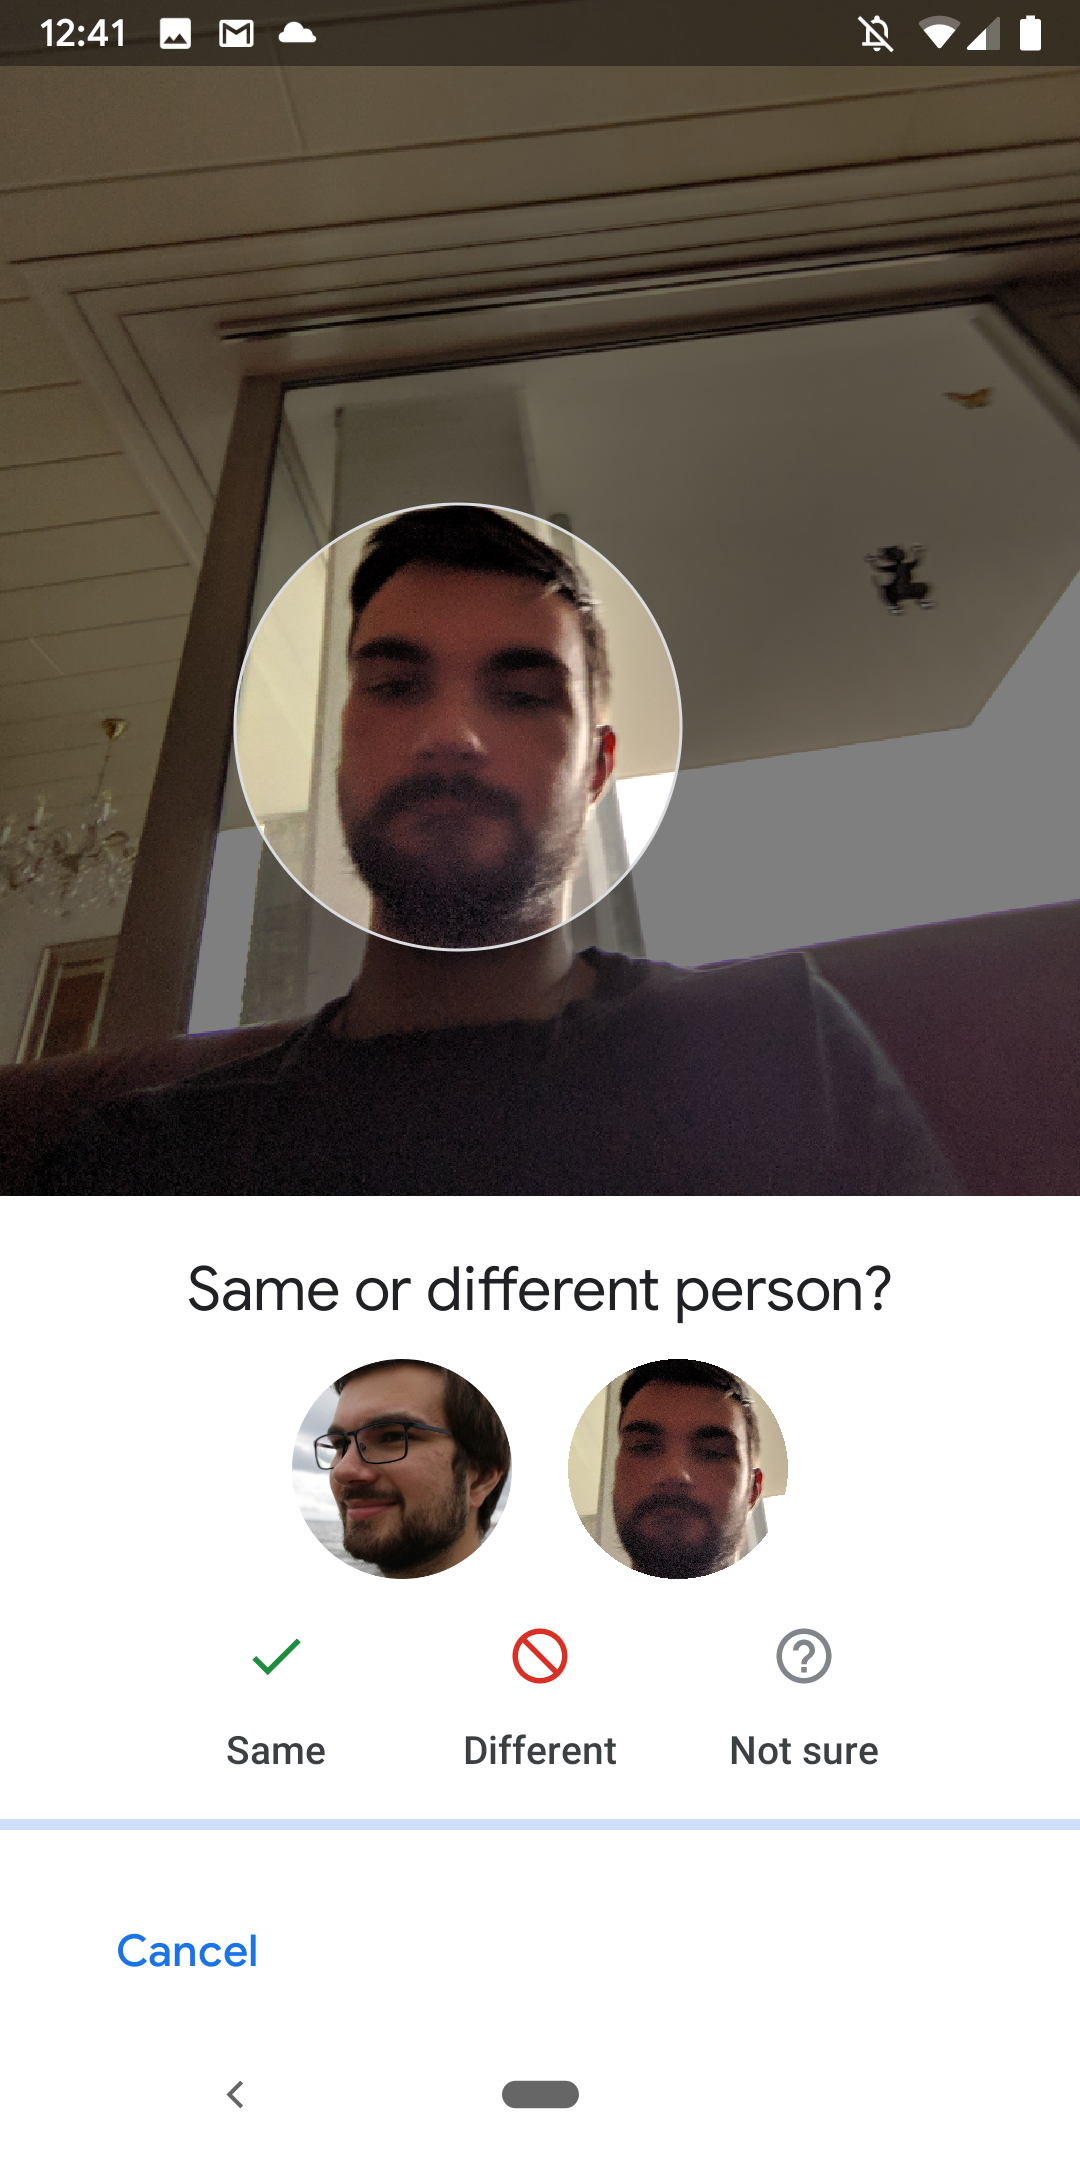 Google Photos has been asking users to help improve its